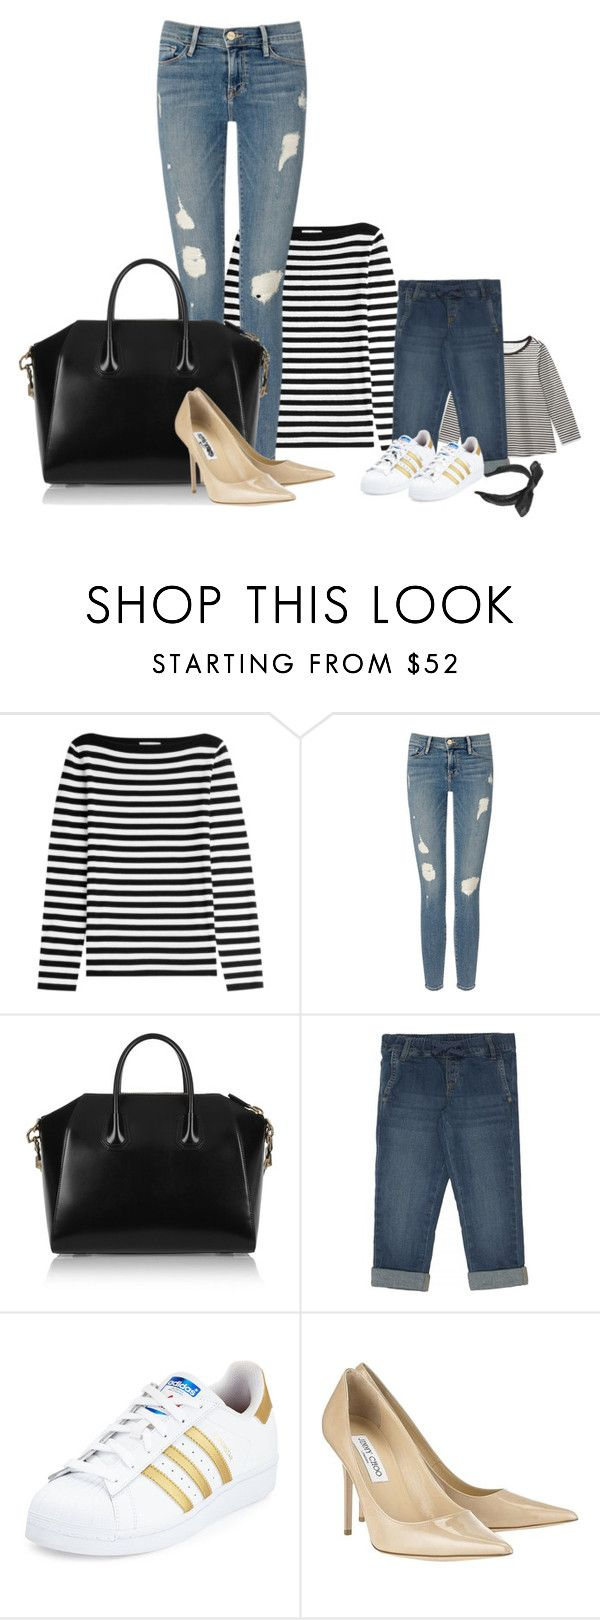 """today's look"" by maja-el-aly ❤ liked on Polyvore featuring Michael Kors, Frame Denim, Givenchy, adidas, Jimmy Choo and Maison Michel"